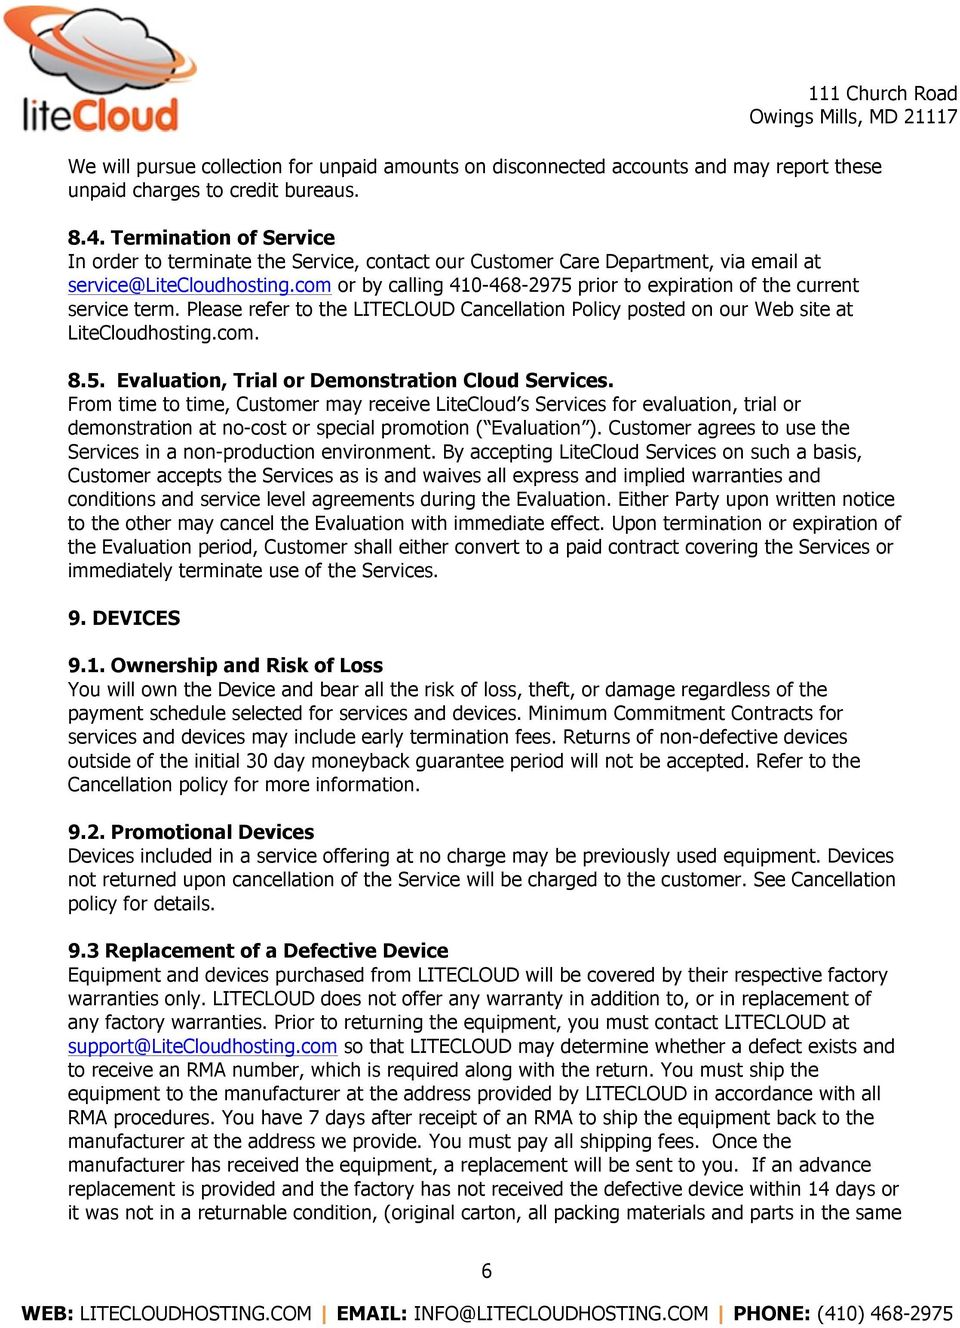 com or by calling 410-468-2975 prior to expiration of the current service term. Please refer to the LITECLOUD Cancellation Policy posted on our Web site at LiteCloudhosting.com. 8.5. Evaluation, Trial or Demonstration Cloud Services.